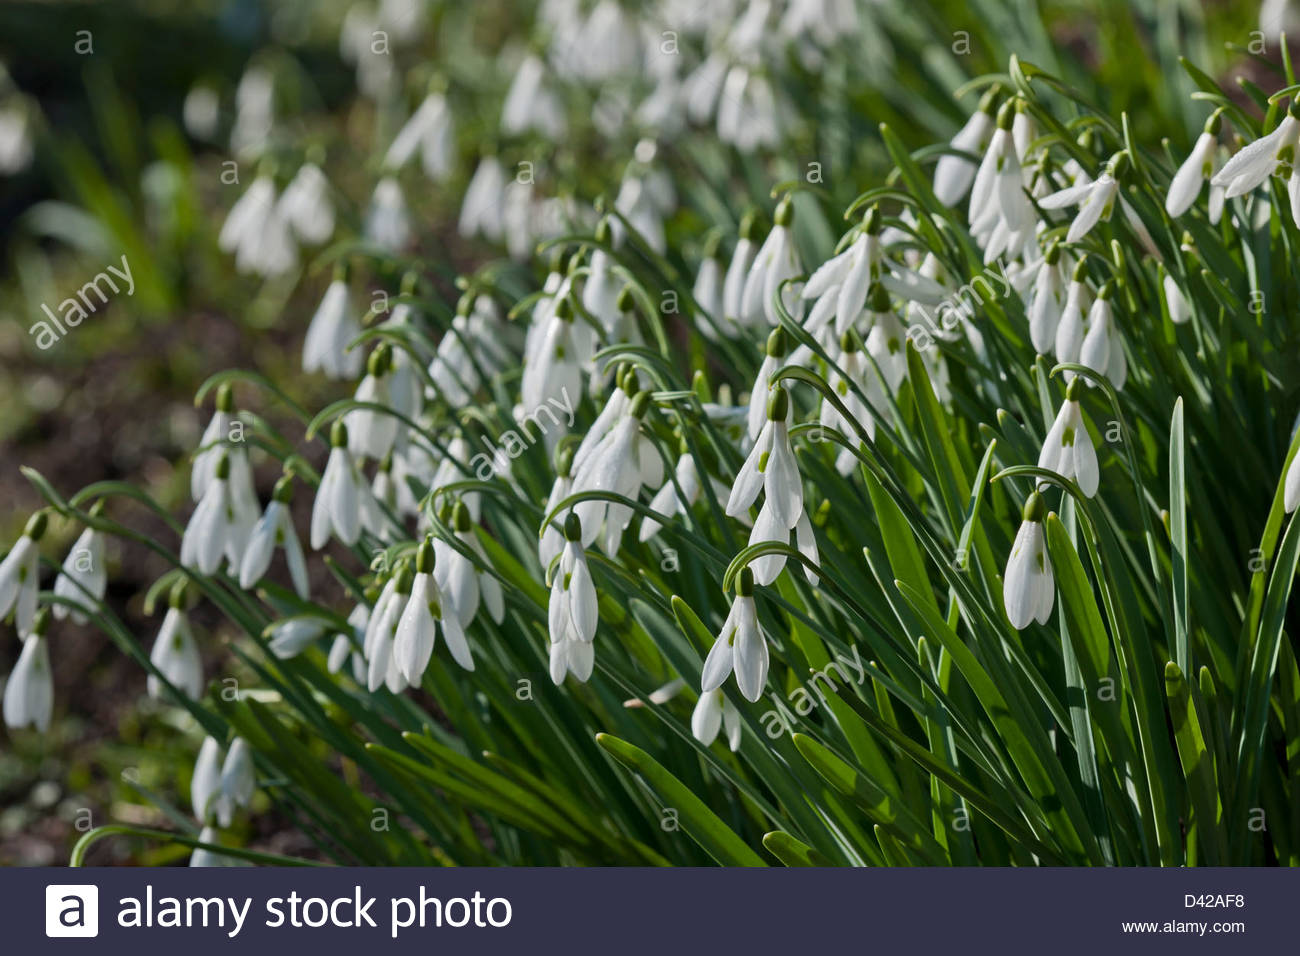 Galanthus limetree spring flower bulb february green white garden galanthus limetree spring flower bulb february green white garden plant galanthophile rare unusual expensive single snowdrop mightylinksfo